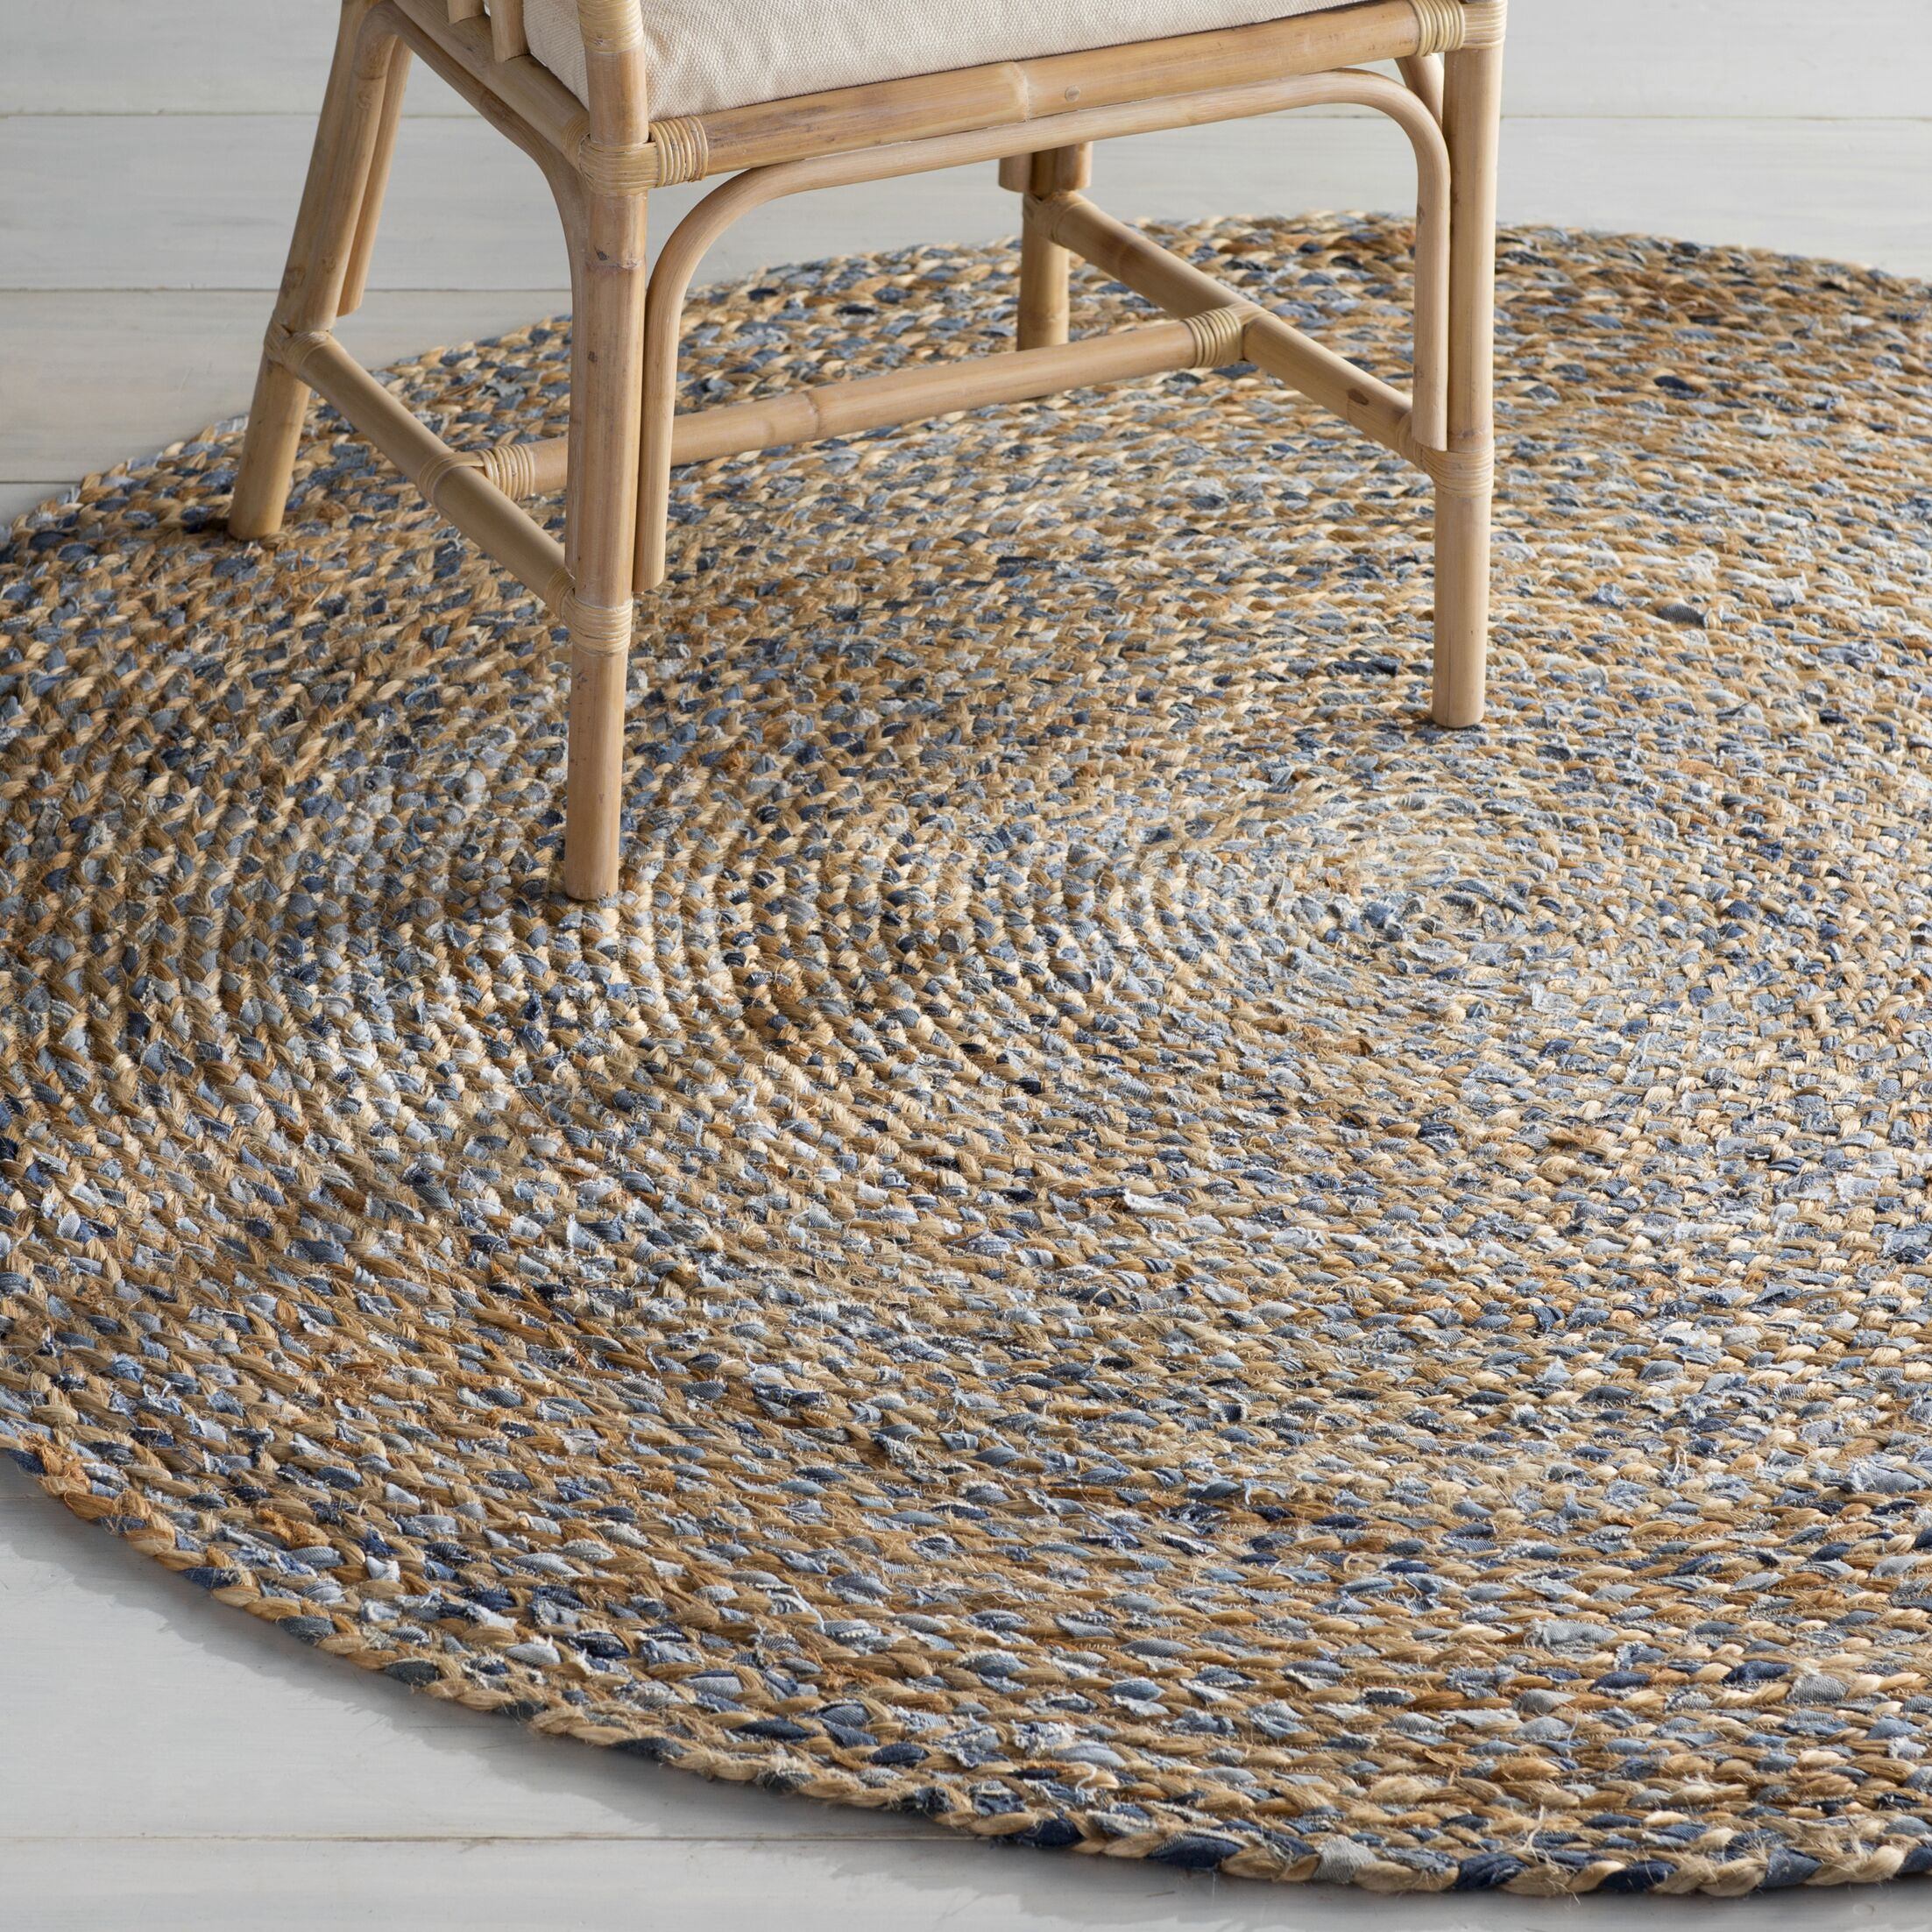 Destrie Hand-Braided Denim Blue Area Rug Rug Size: Round 6'